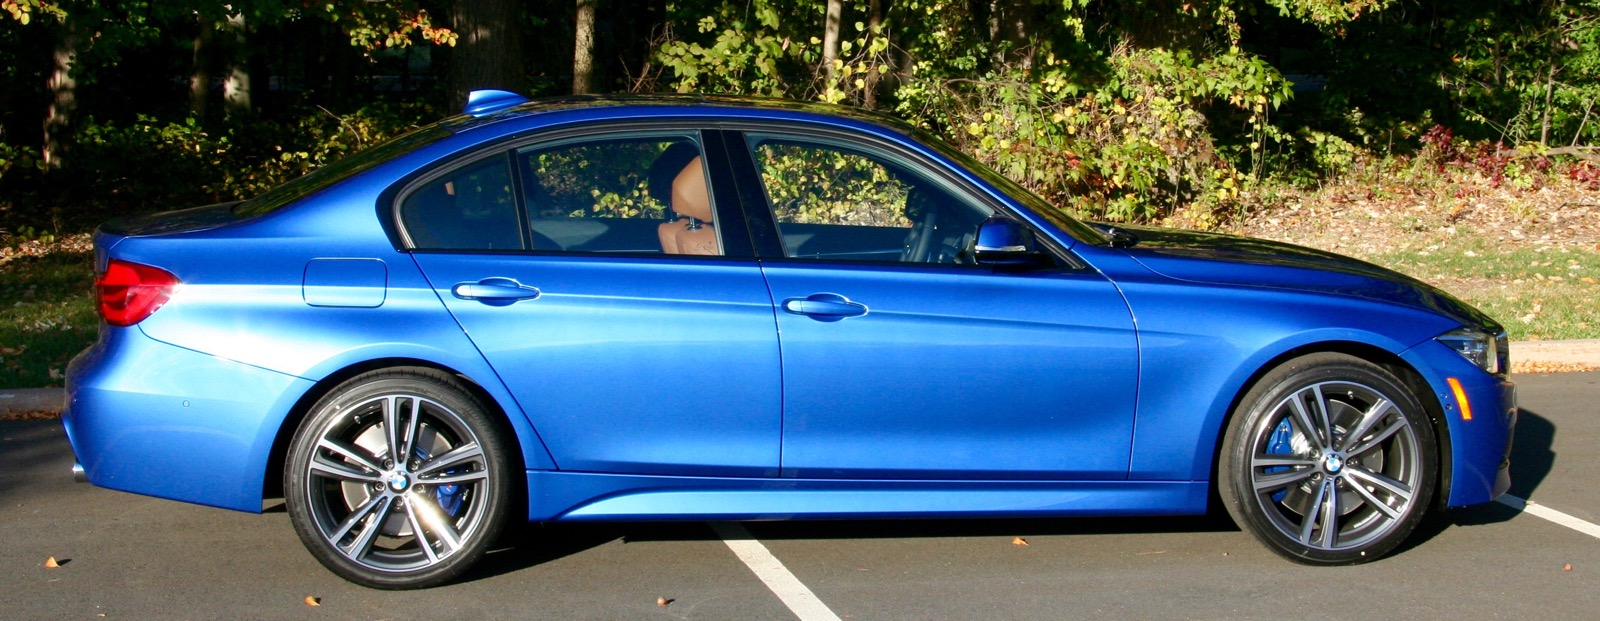 F30 Official Estoril Blue Ii F30 Photo Thread Page 31